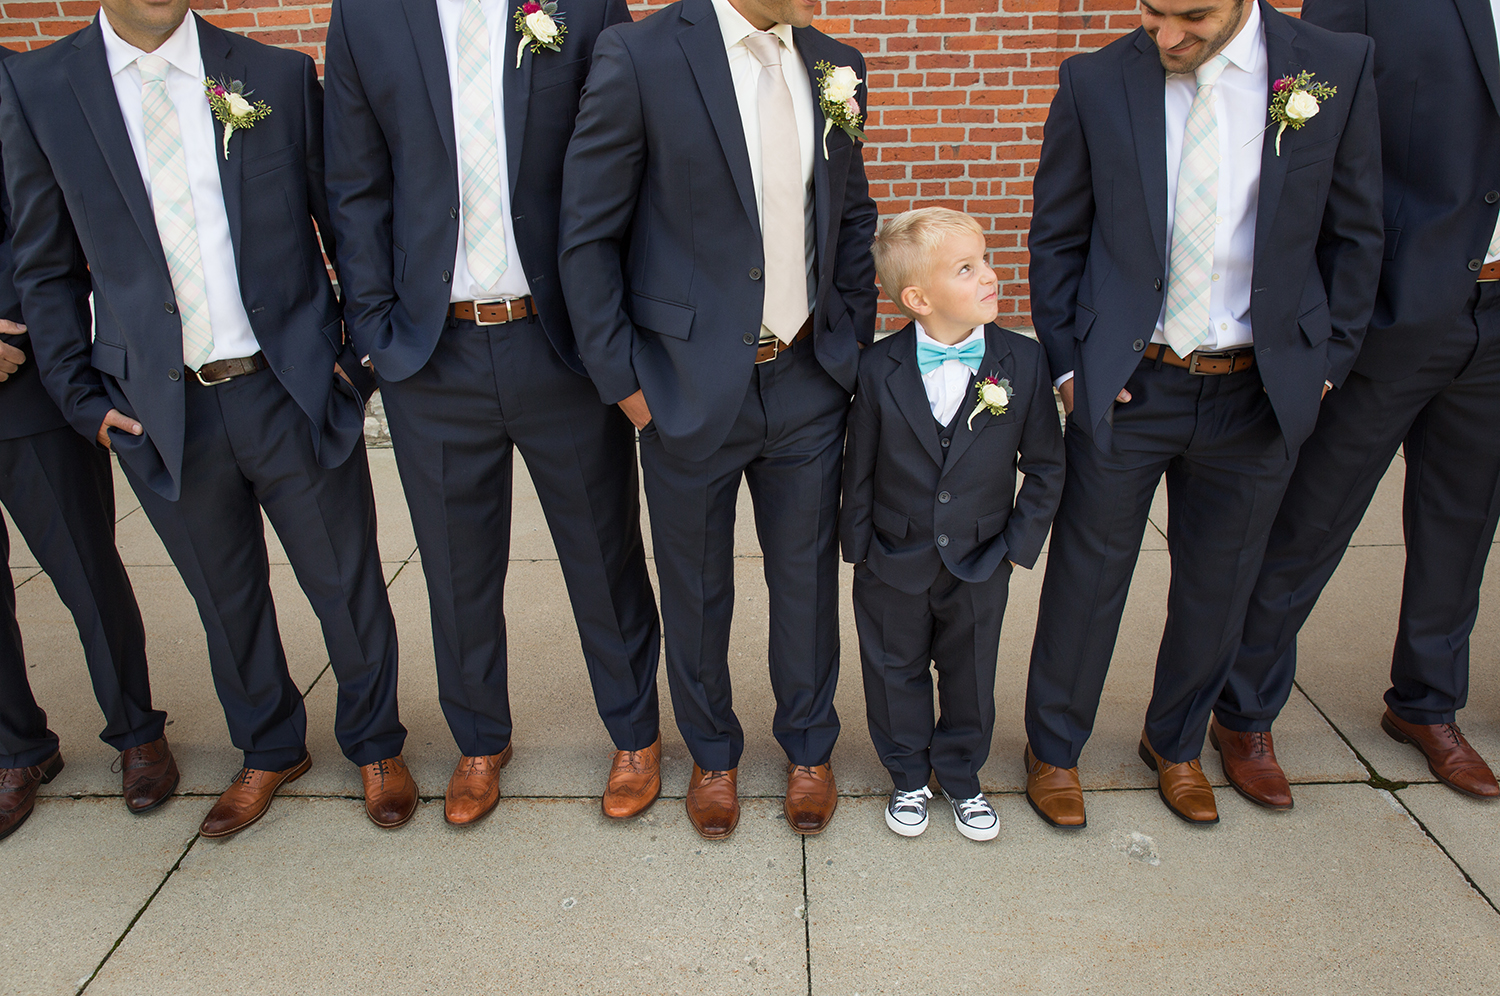 Minster Ohio, St Augustine Catholic church, ring bearer, modern wedding photography, navy suits, groomsmen